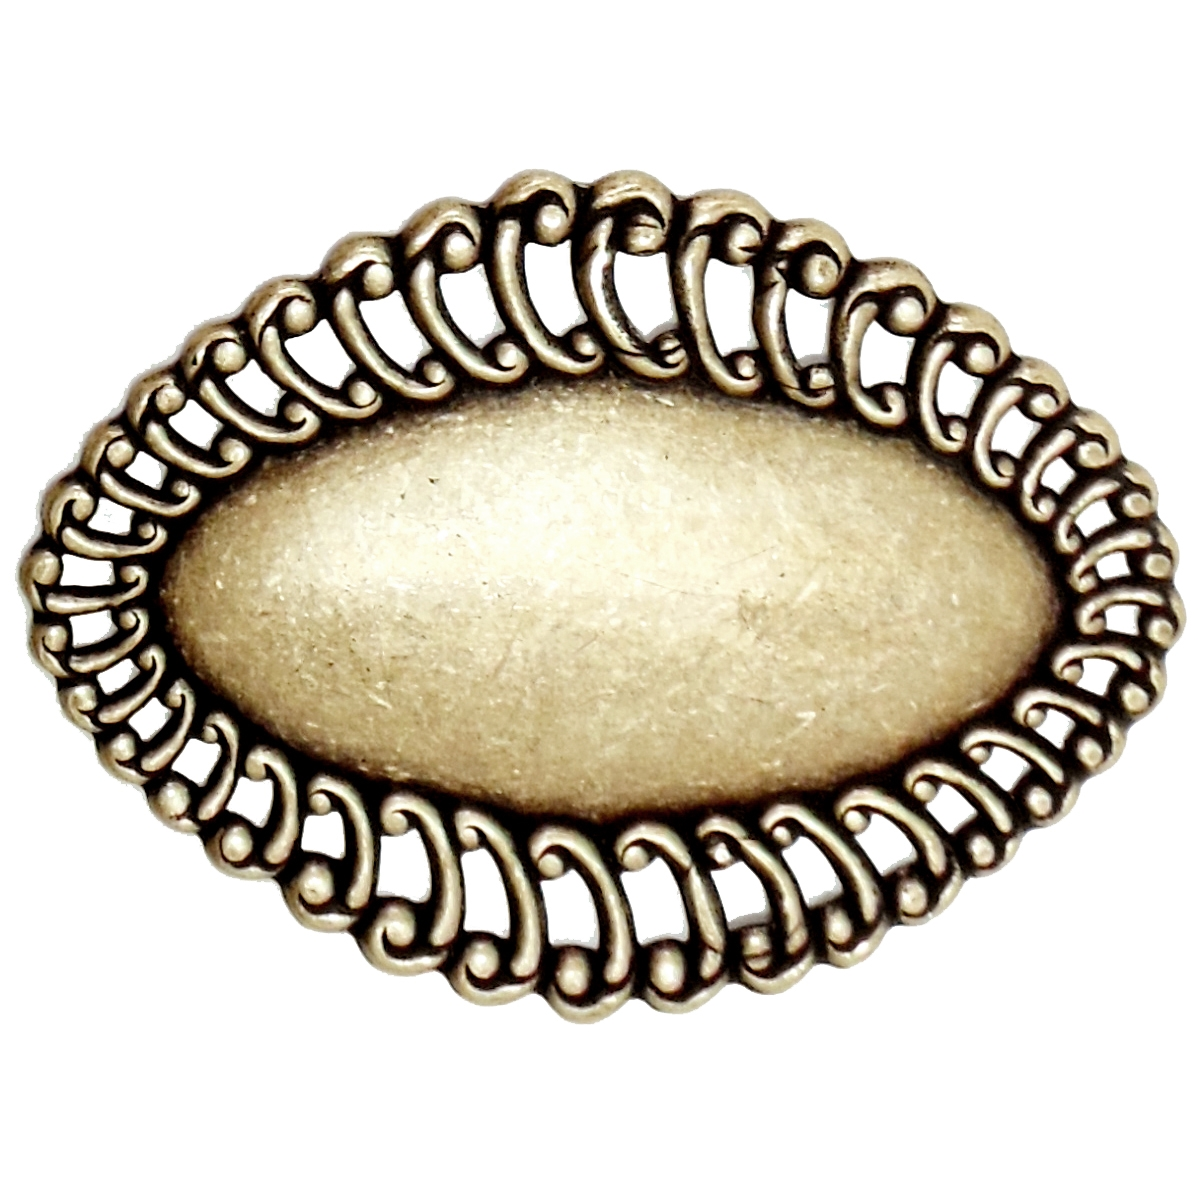 brass stampings, looped base, oval base, brass ox, antique brass, jewelry making supplies, vintage jewelry supplies, nickel free, US made, bsueboutiques, 04983